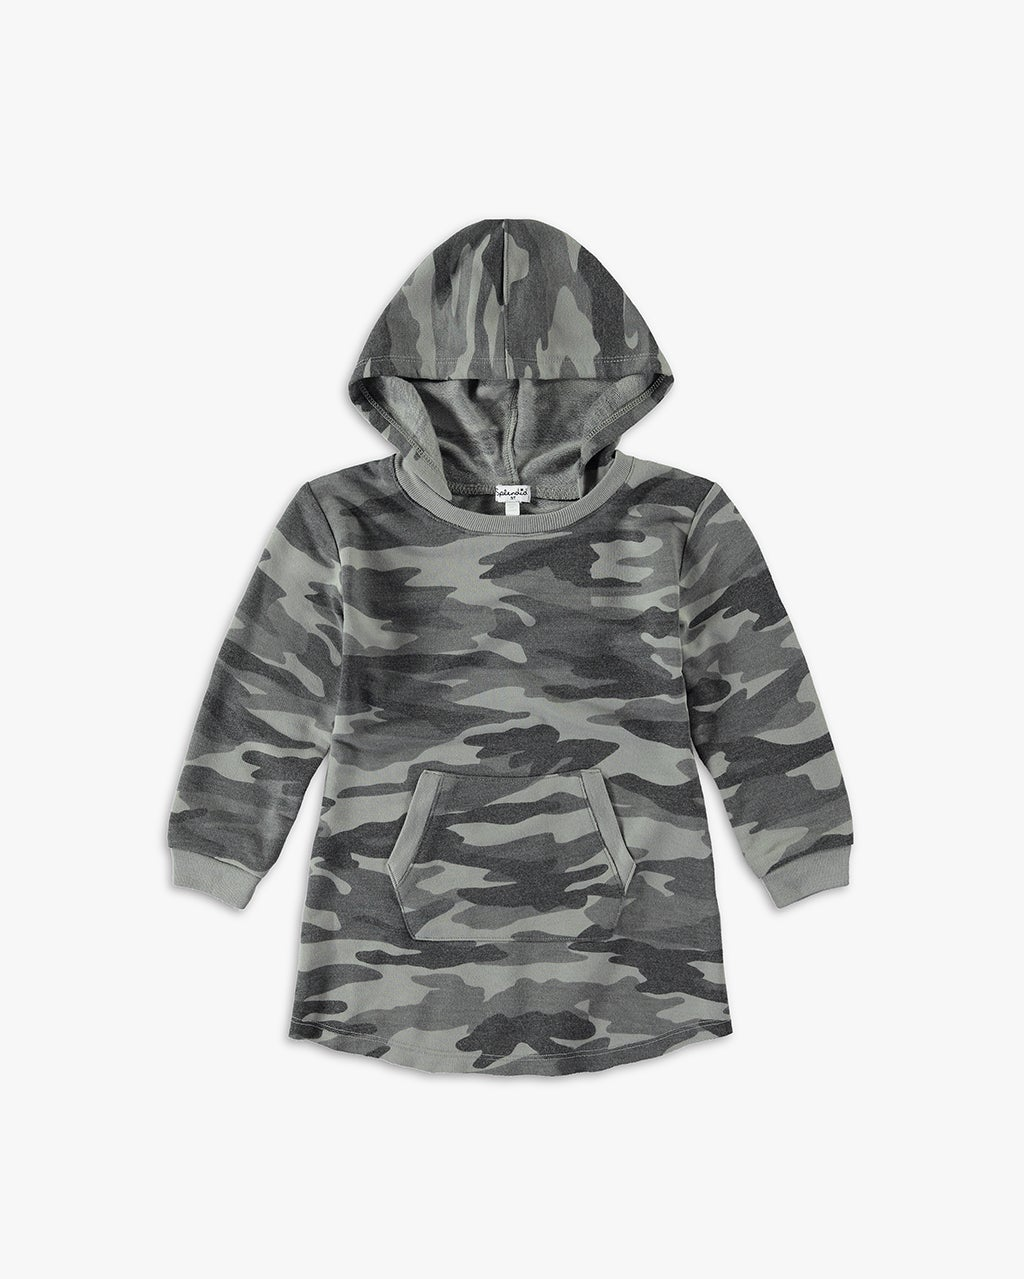 Splendid Little Girl Camo Dress with Hood